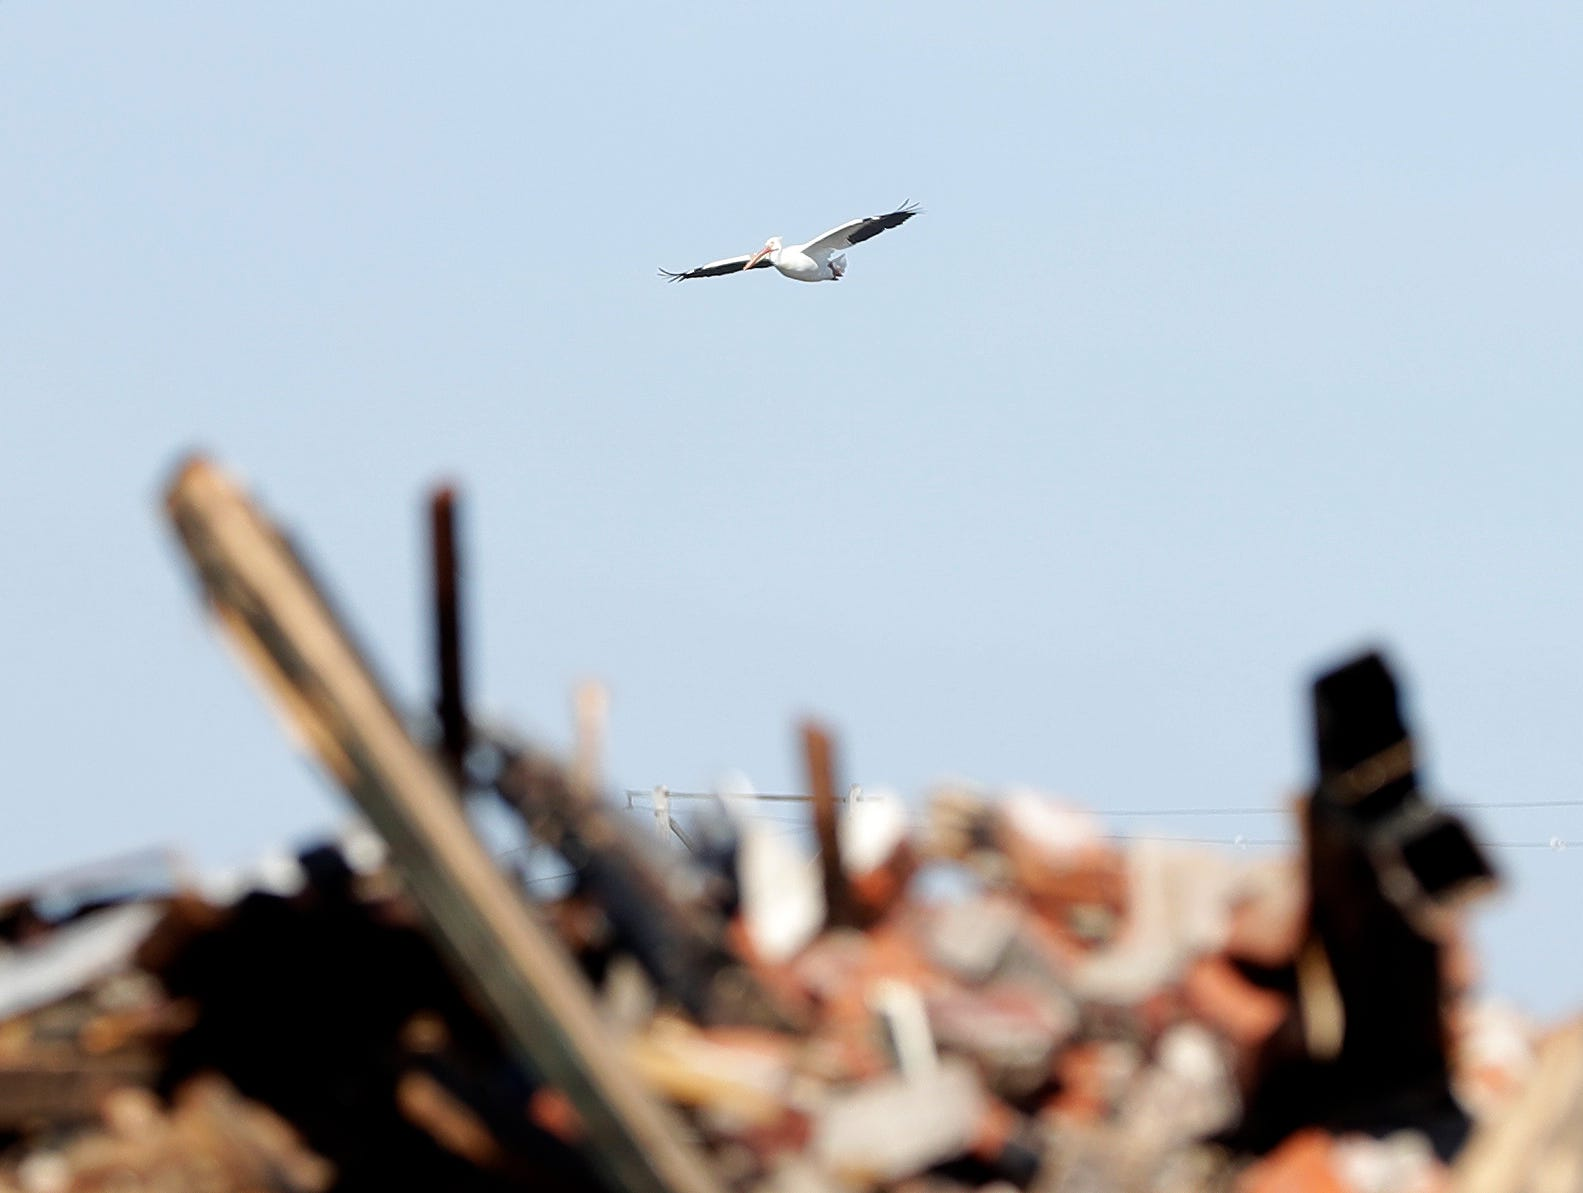 A pelican flies behind the debris of 100 S. Broadway in De Pere on April 24, 2019, after the building burned down overnight. The building was home to Ogan Restaurant, apartments and a number of other businesses.